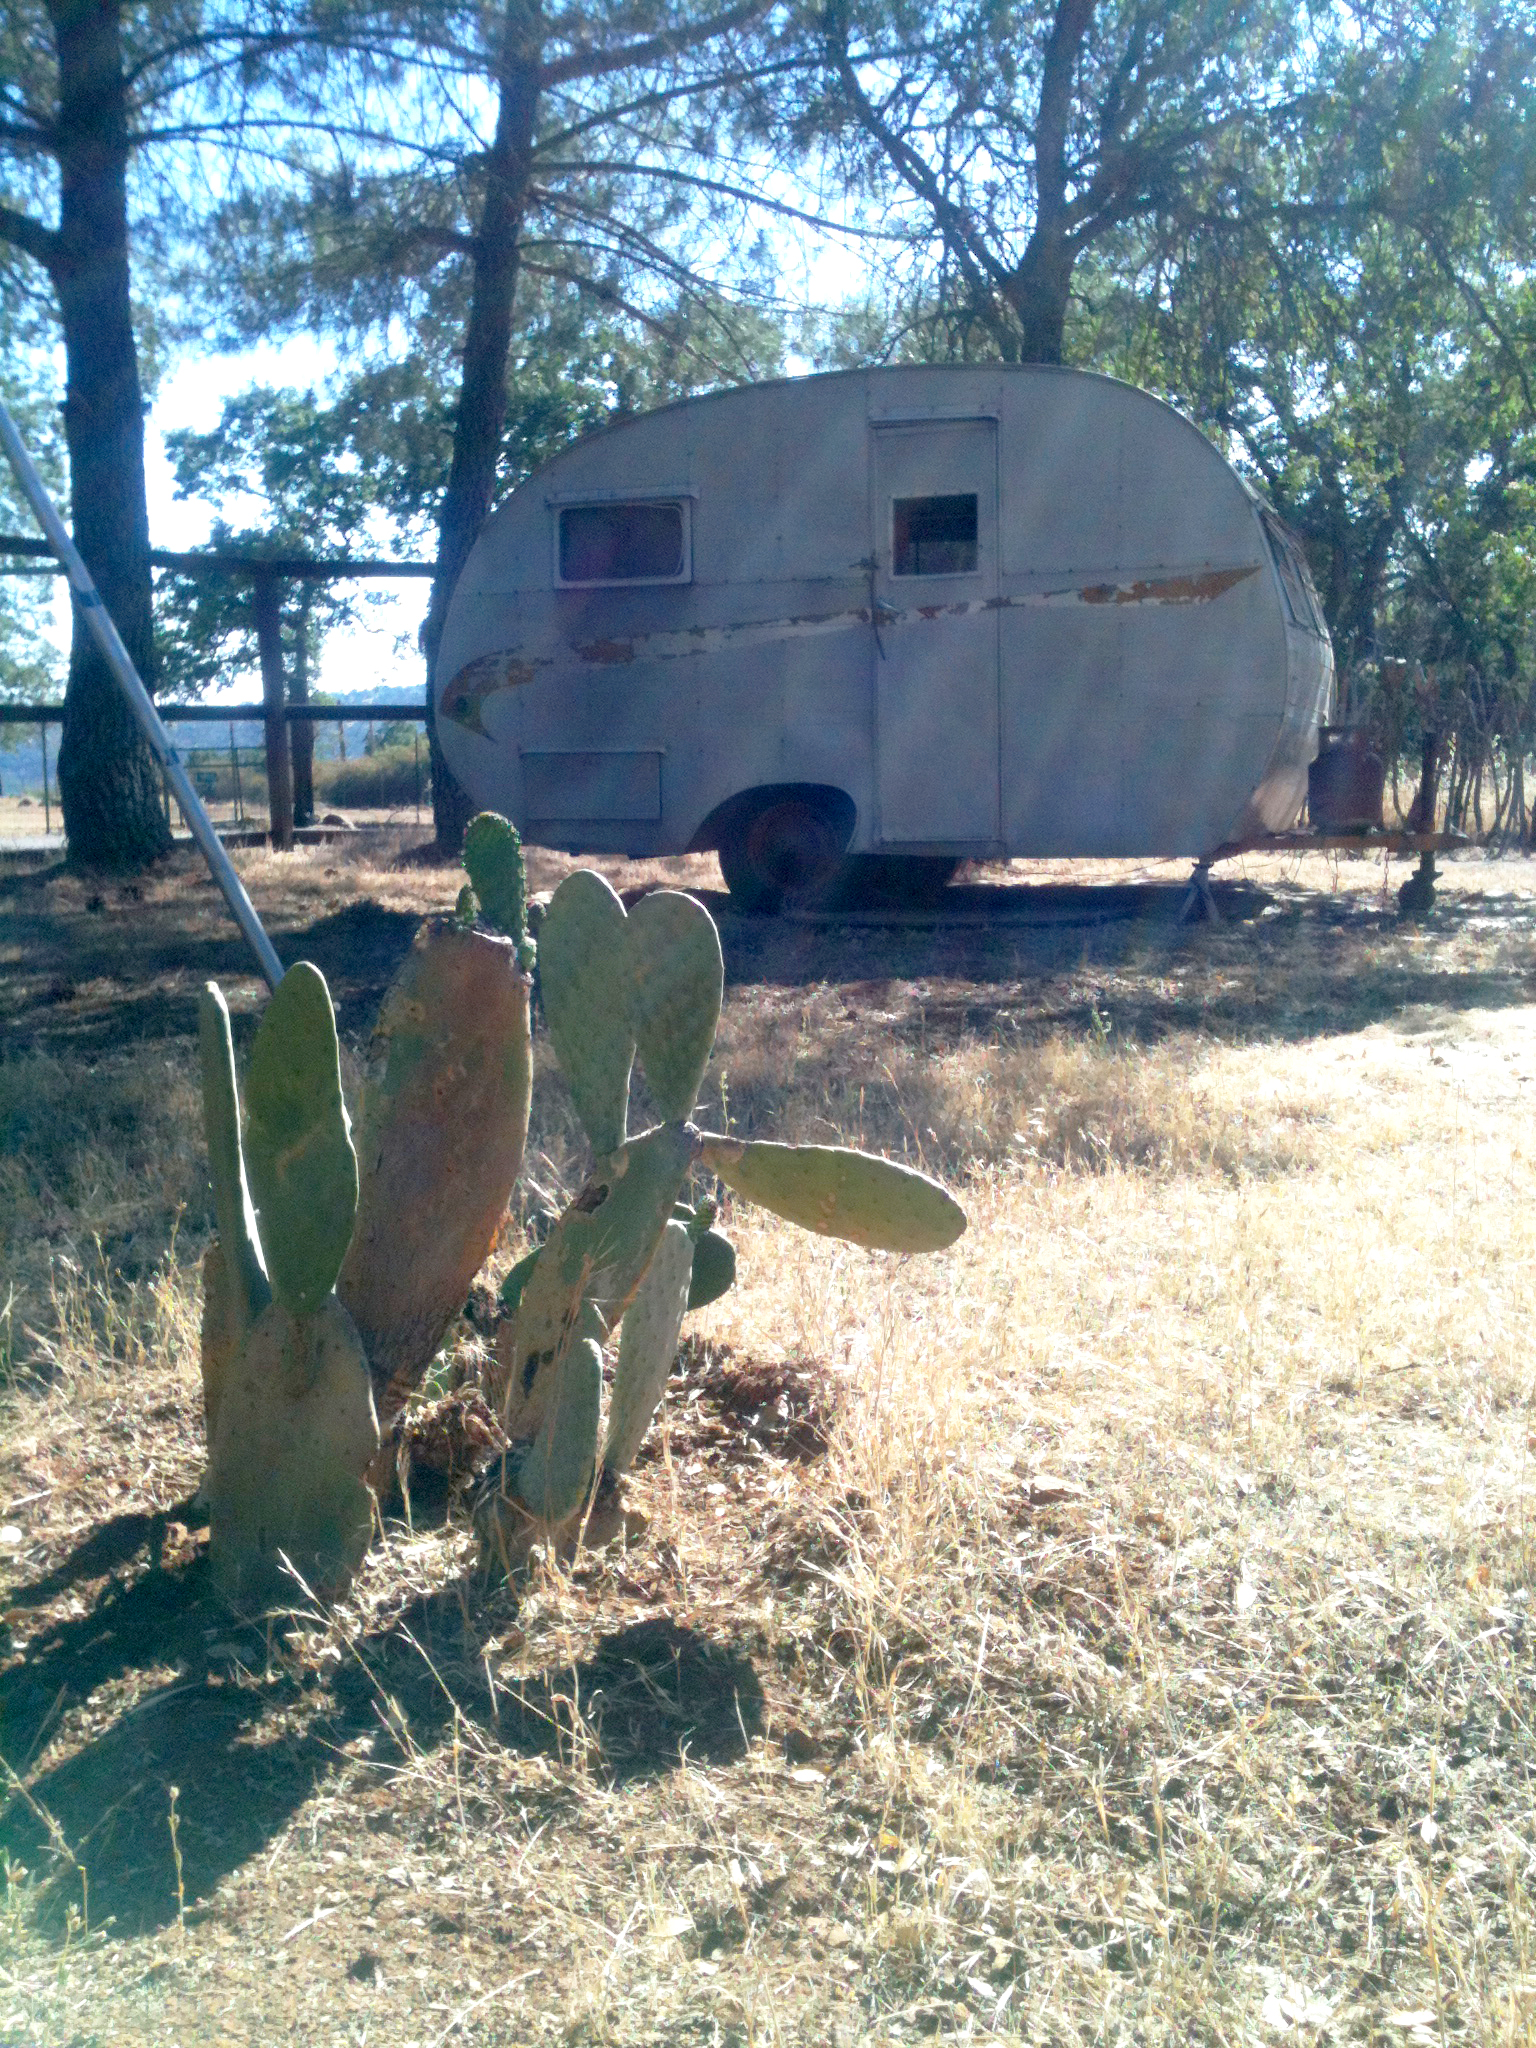 A vintage trailer on the ranch.